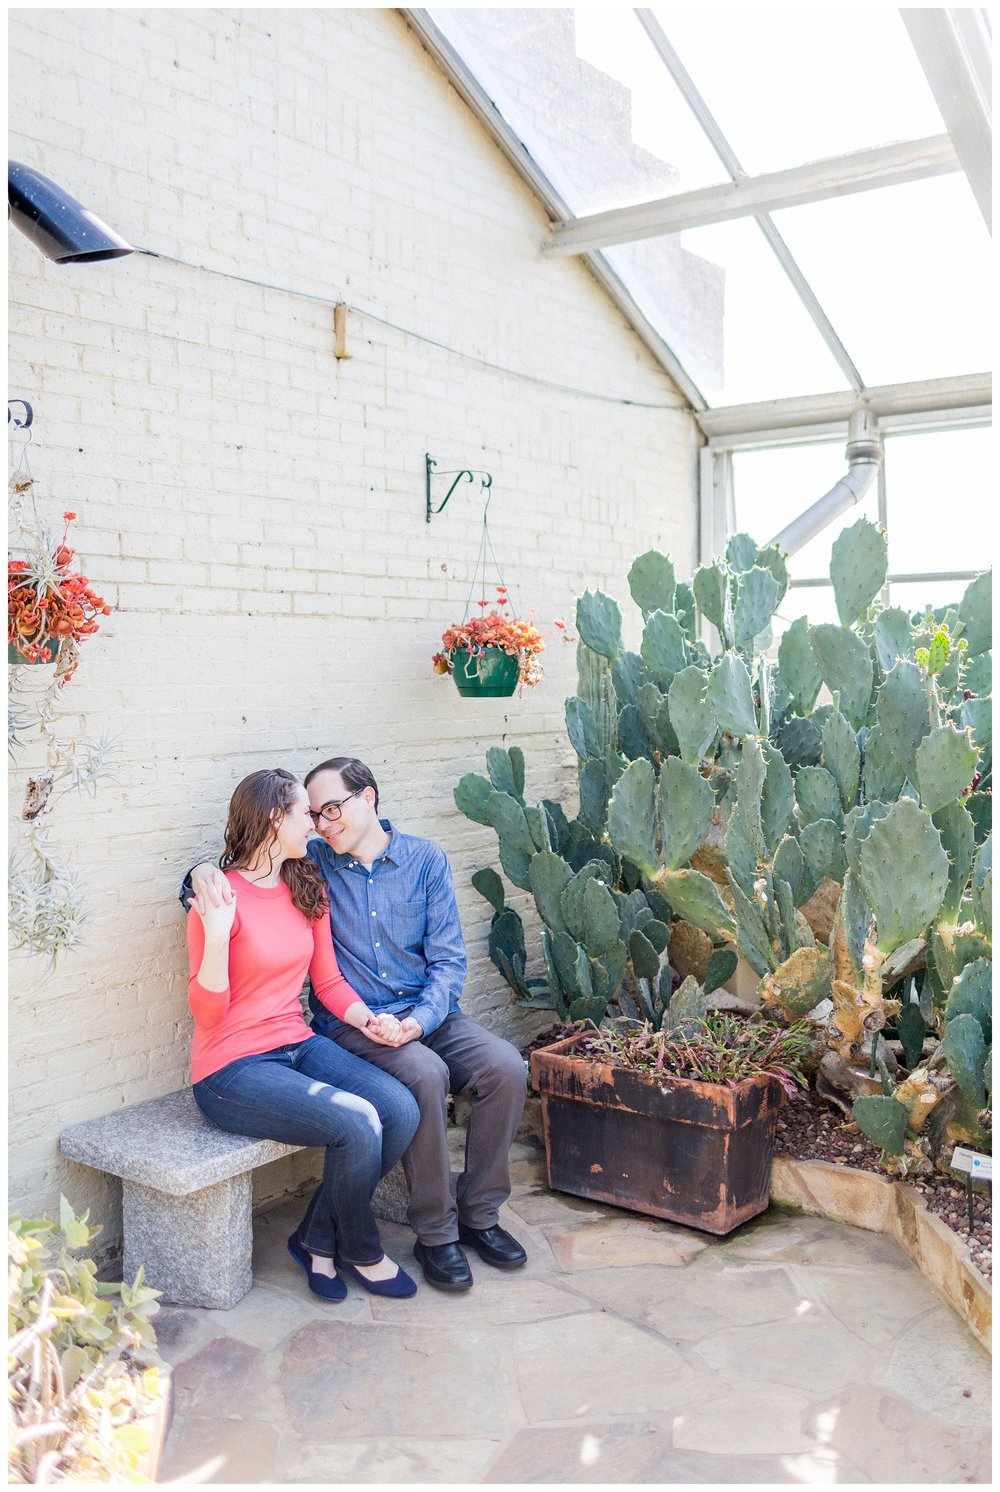 Baltimore Engagement Pictures | Maryland Wedding Photographer Kir Tuben_0007.jpg